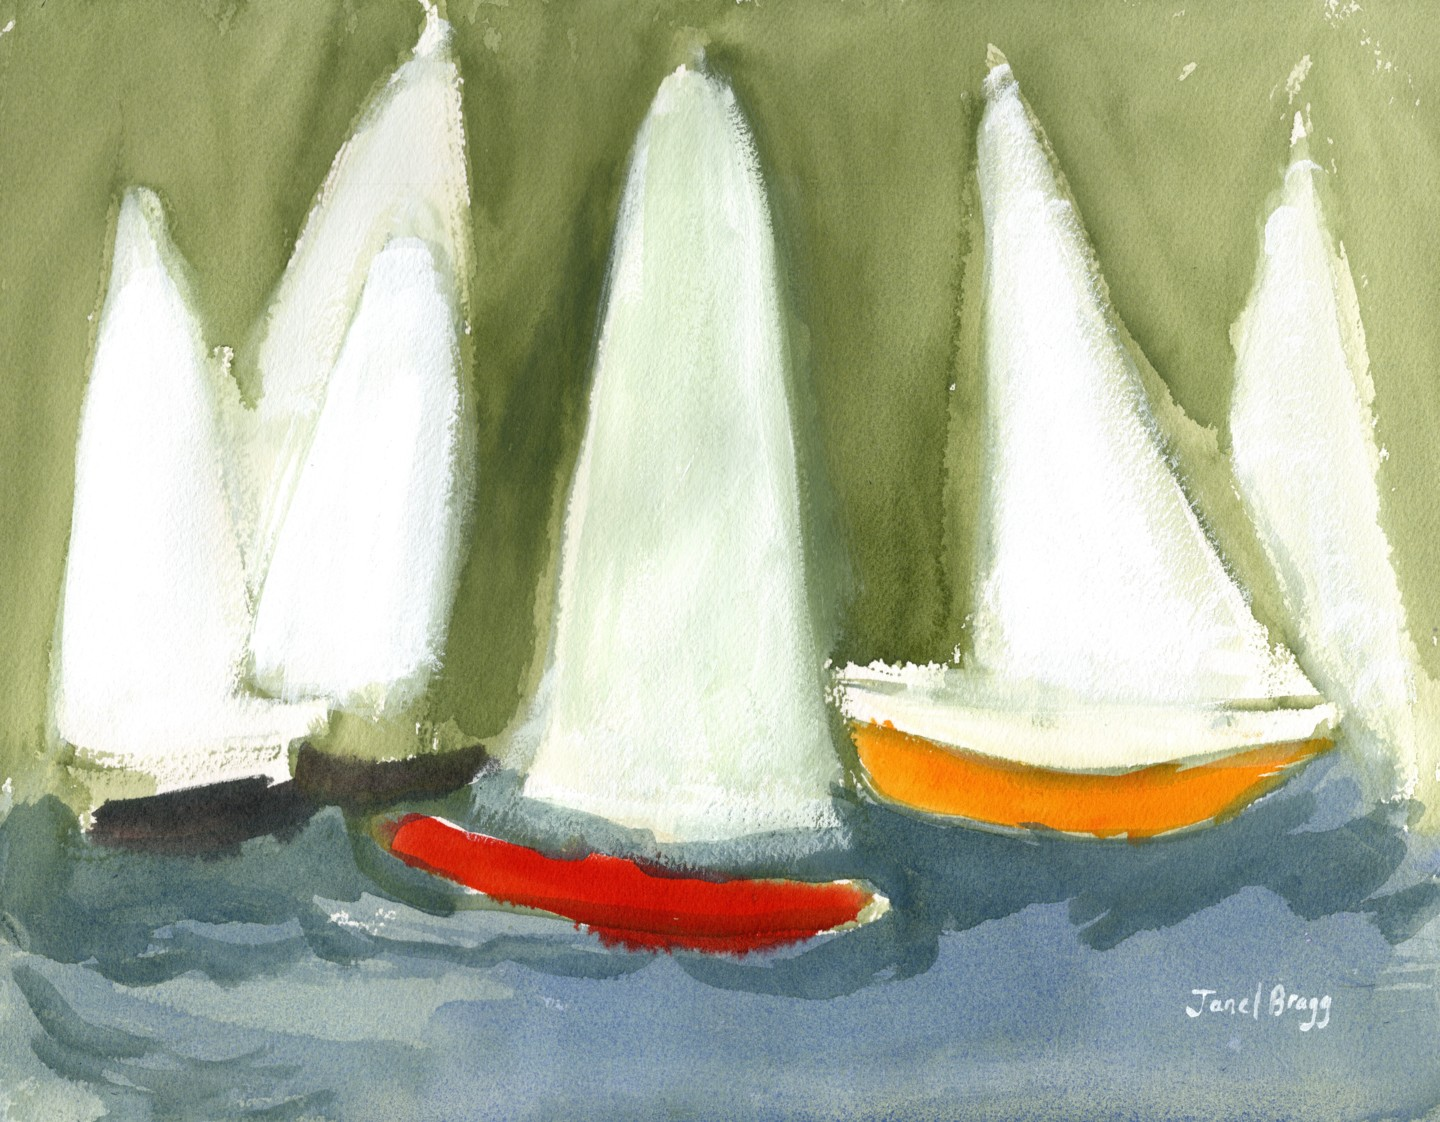 Janel Bragg - Sailboats in the Puget Sound